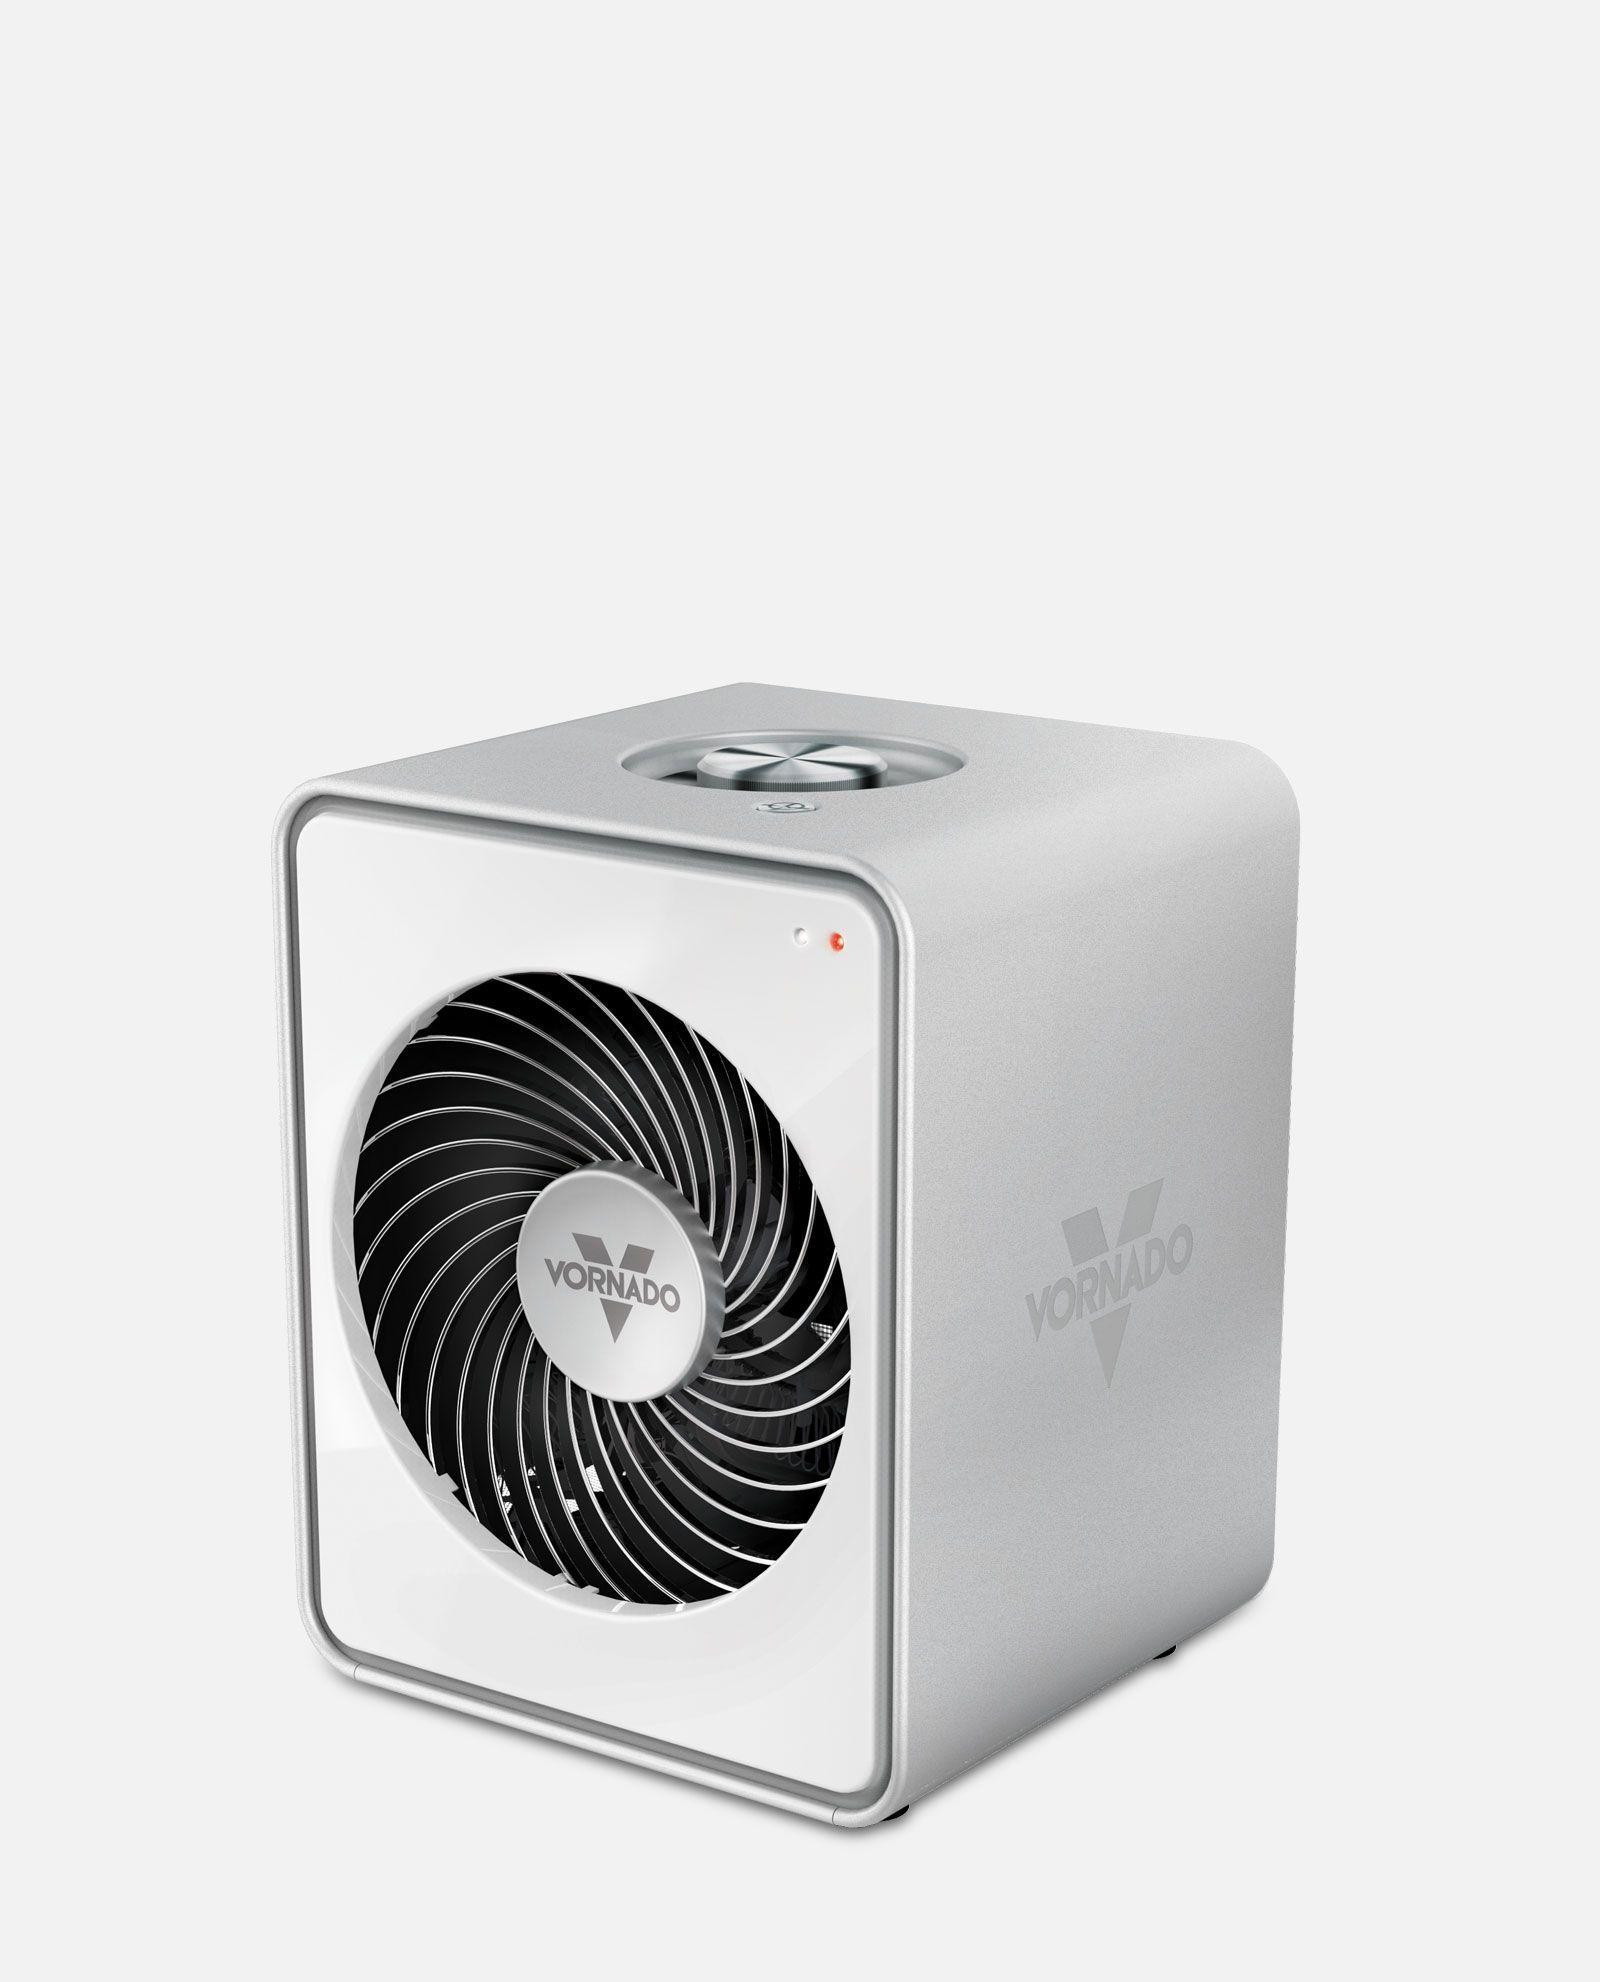 heaters personals Dating back to the introduction of the first reznor gas stove heater in 1888 this innovation and advancement continues in reznor unit heaters today, and can be seen in our complete line of.